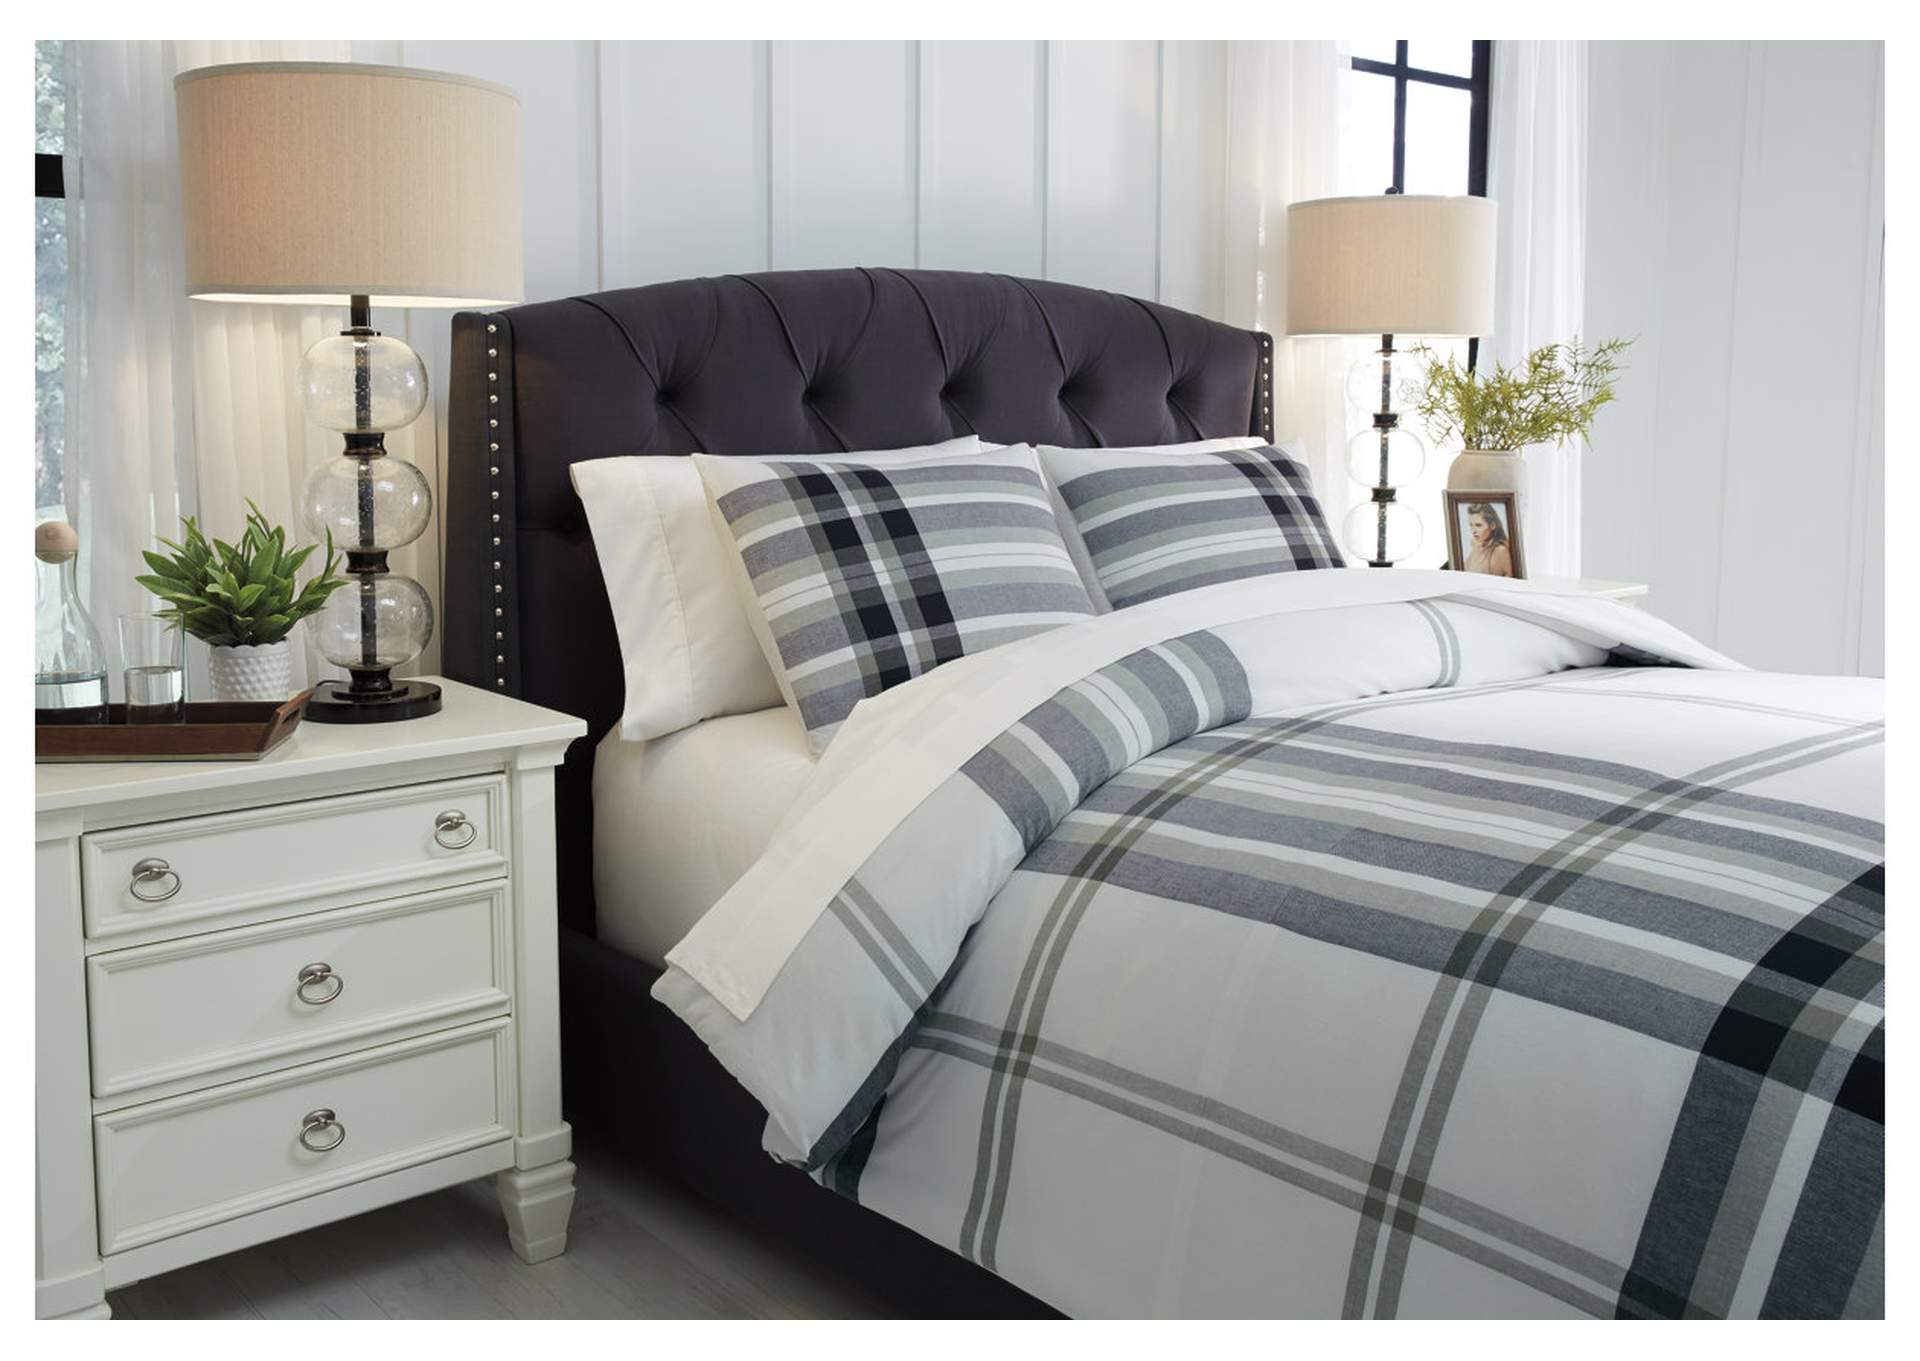 Stayner 3-Piece King Comforter Set,Direct To Consumer Express